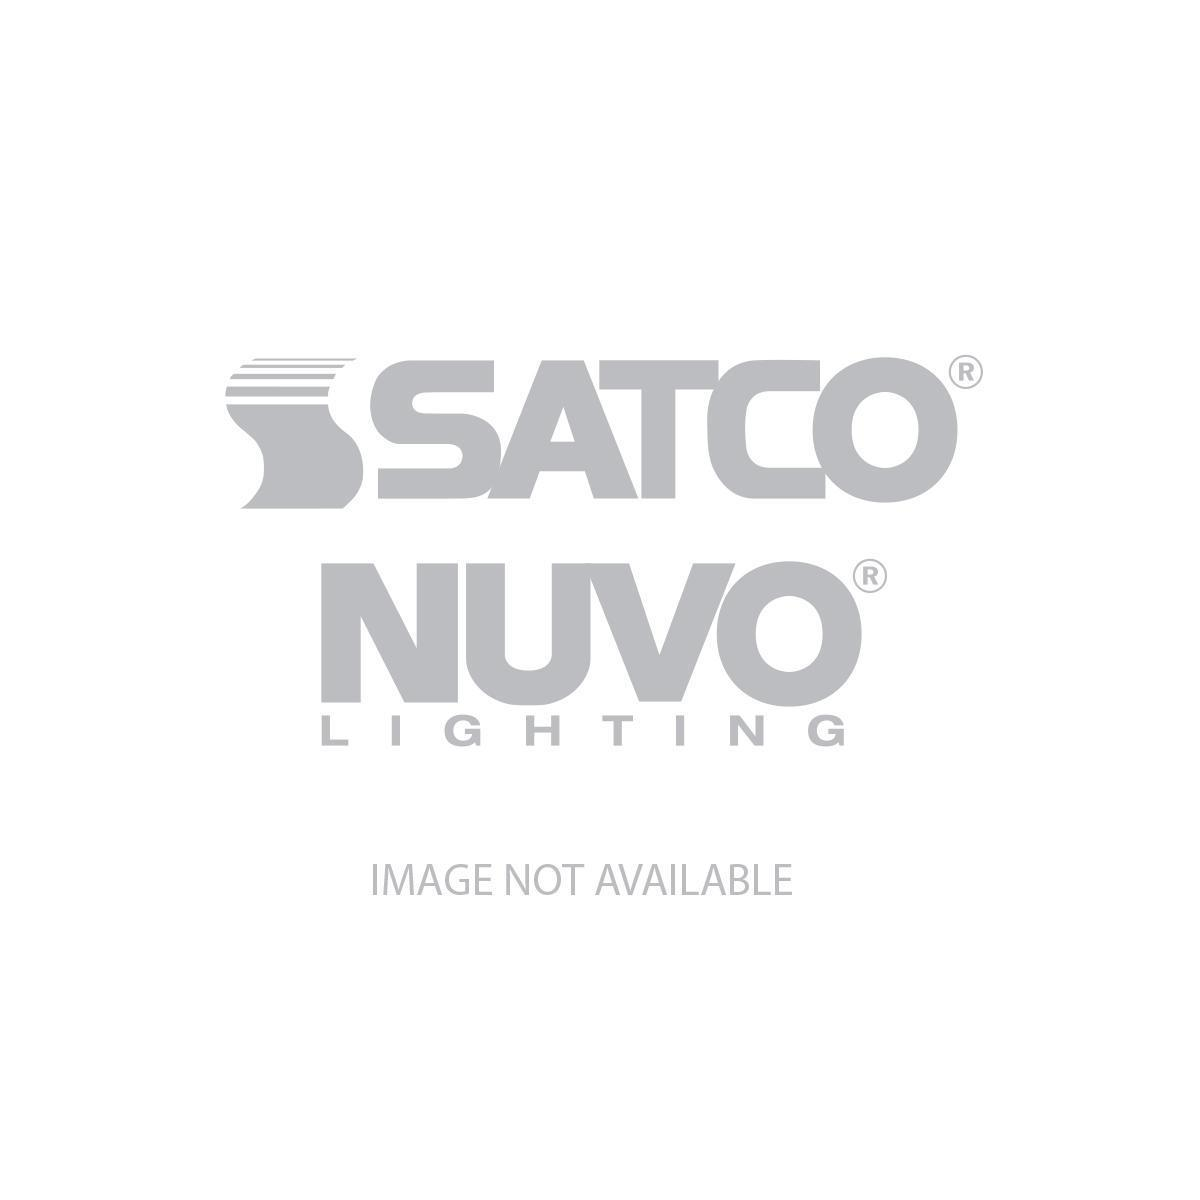 SATCO 9.5W LED A19 - 220' Beam Spread - Medium Base - 270...